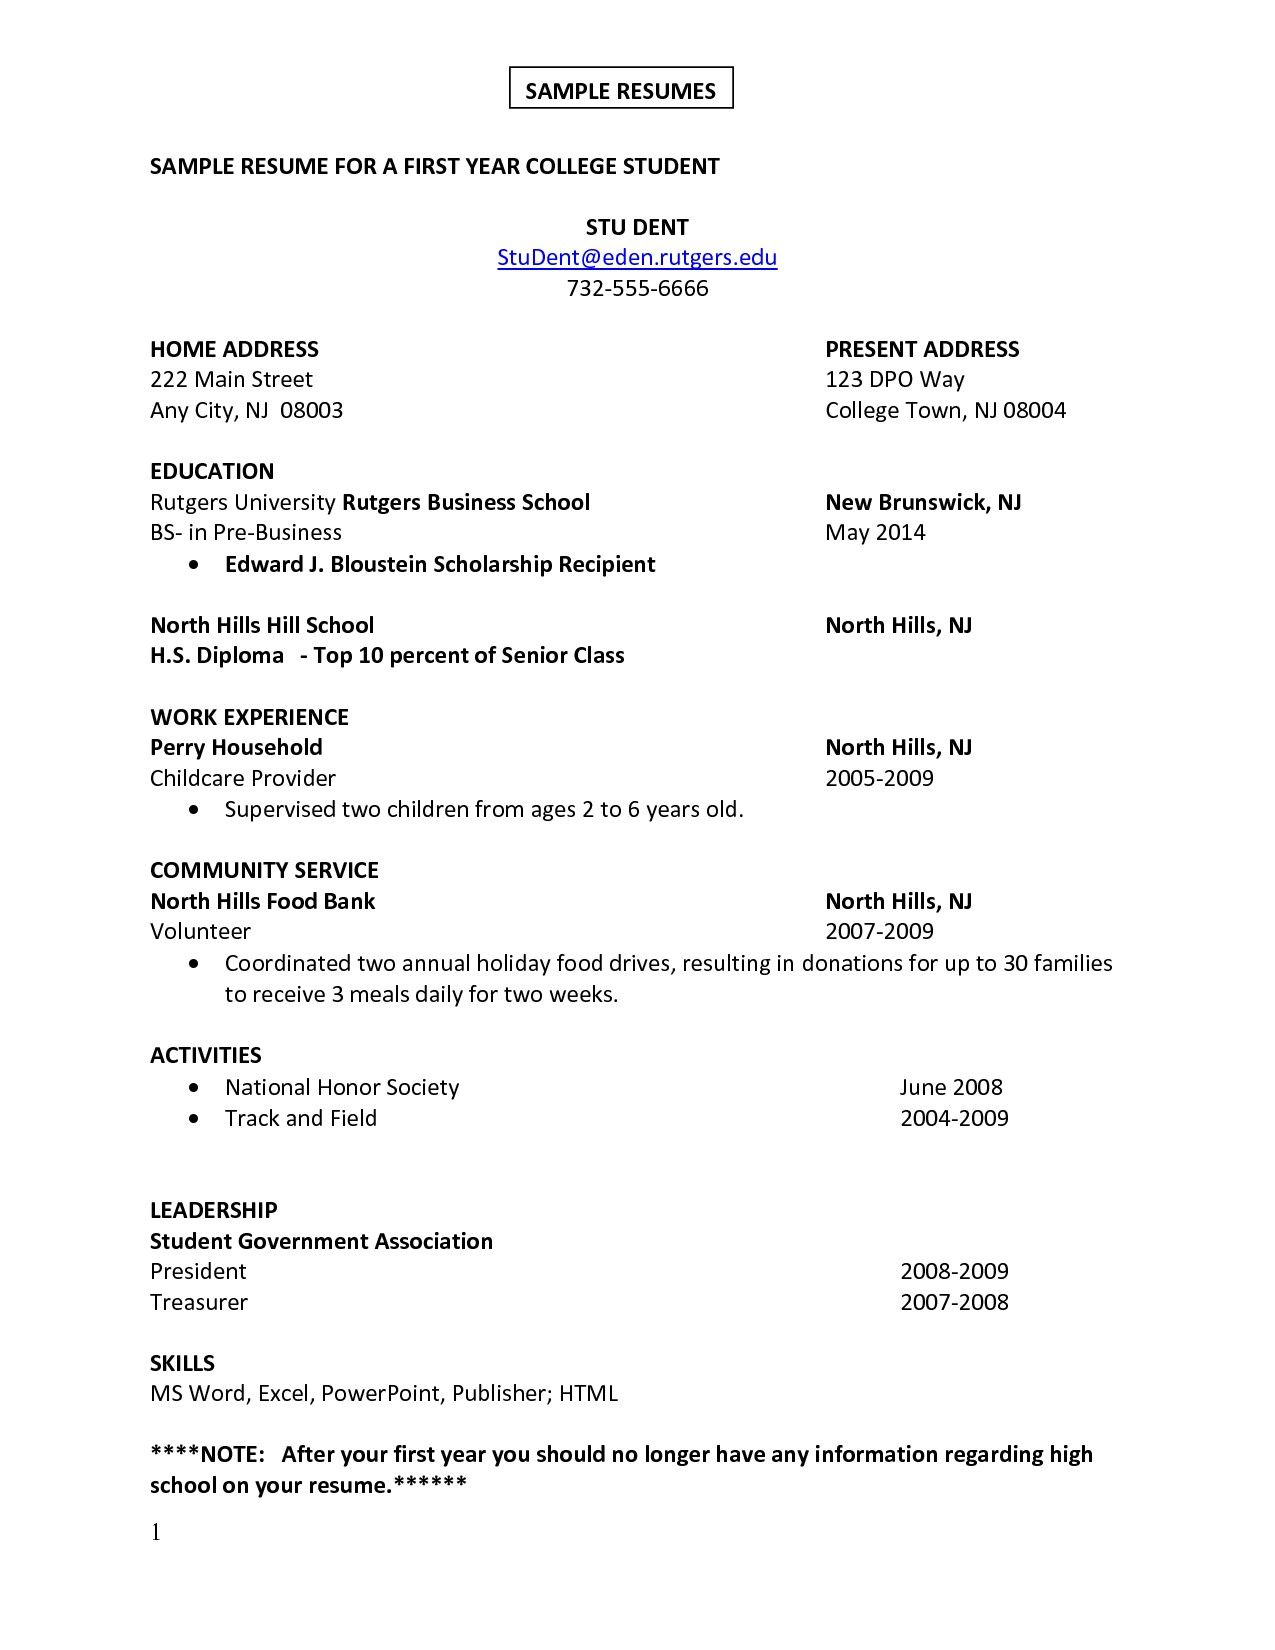 Marvelous First Time Job Resume Template Example Of Job Resume. A Good Resume Example  Resume Cover Letter . Regarding Resume Templates For First Job